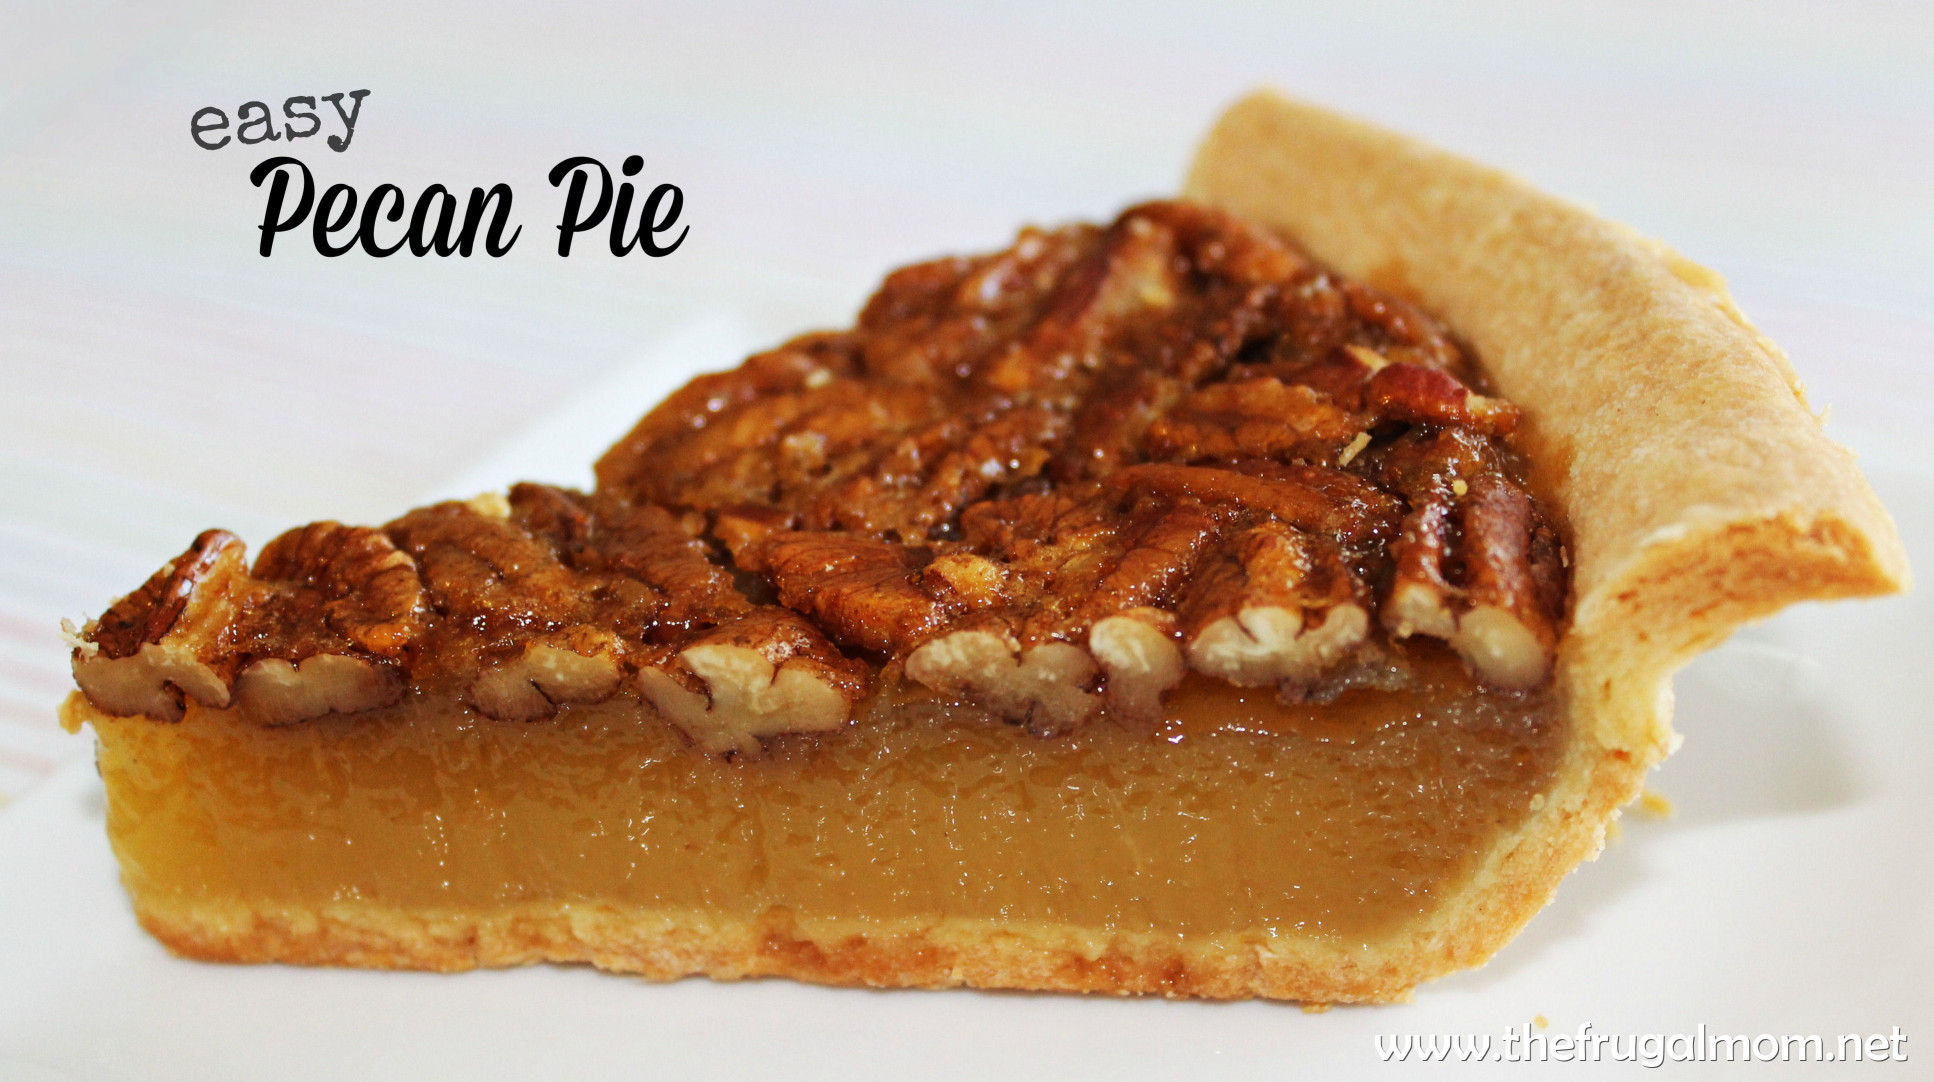 Pecan Pie Recipe  An Easy Pecan Pie Recipe The Entire Family Will Enjoy